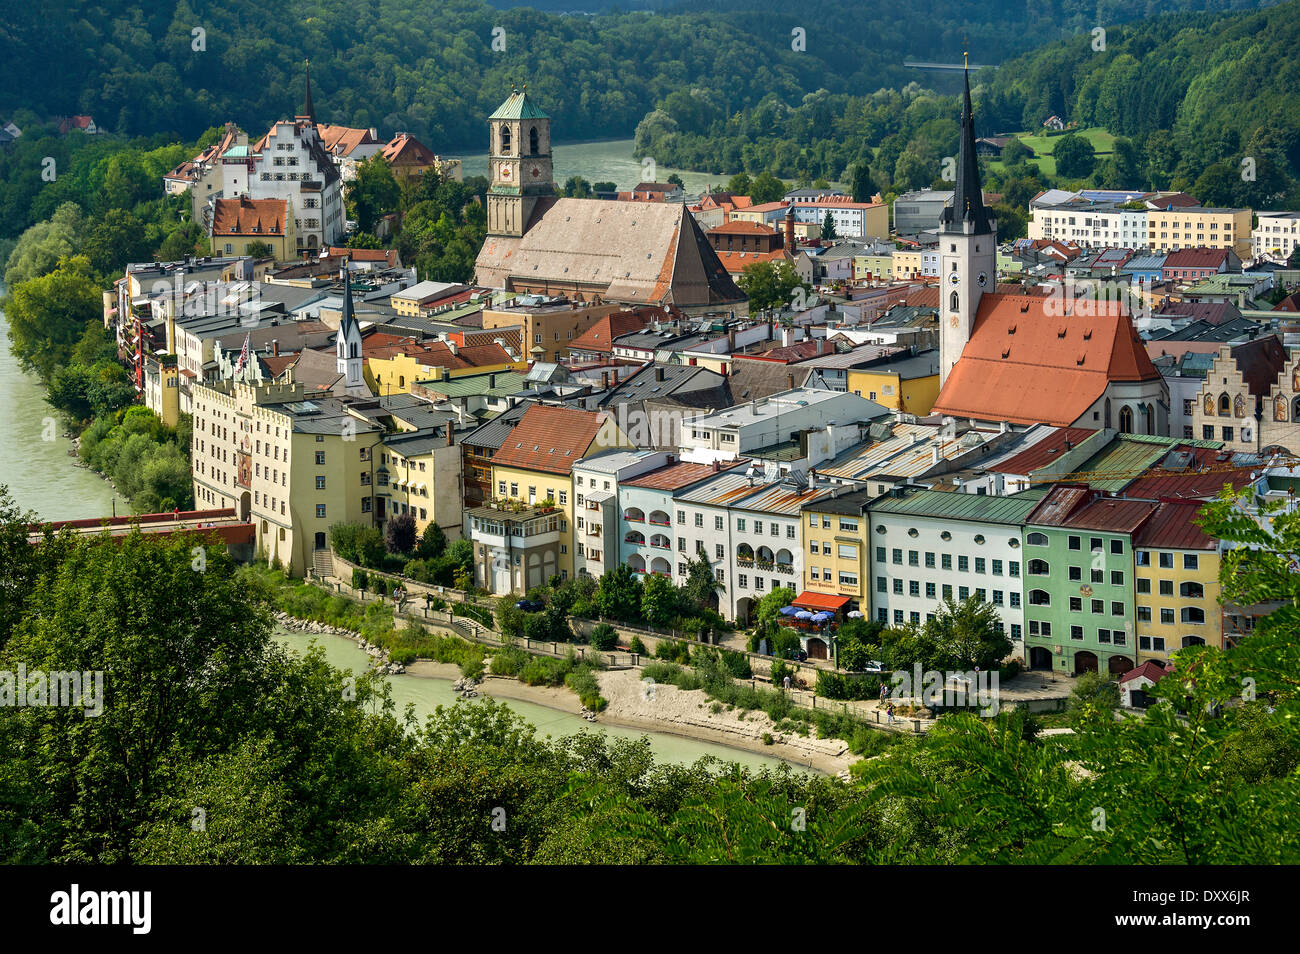 Wasserburg Am Inn Germania townscape of wasserburg am inn, upper bavaria, bavaria